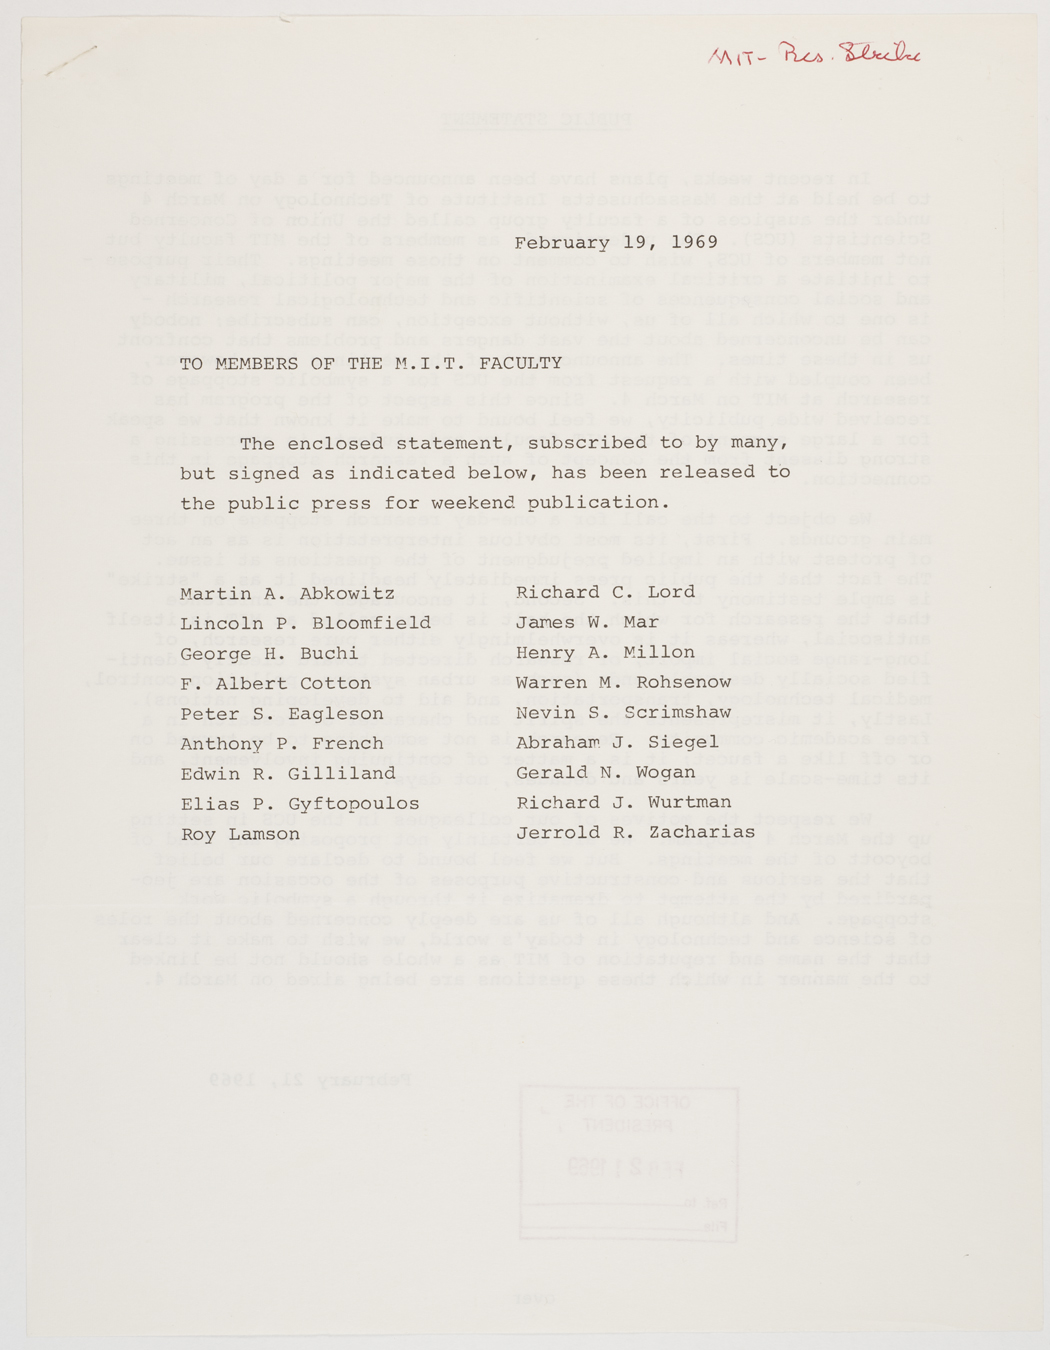 To members of the MIT faculty statement, 1969 February 19, AC-0118, Box 107.